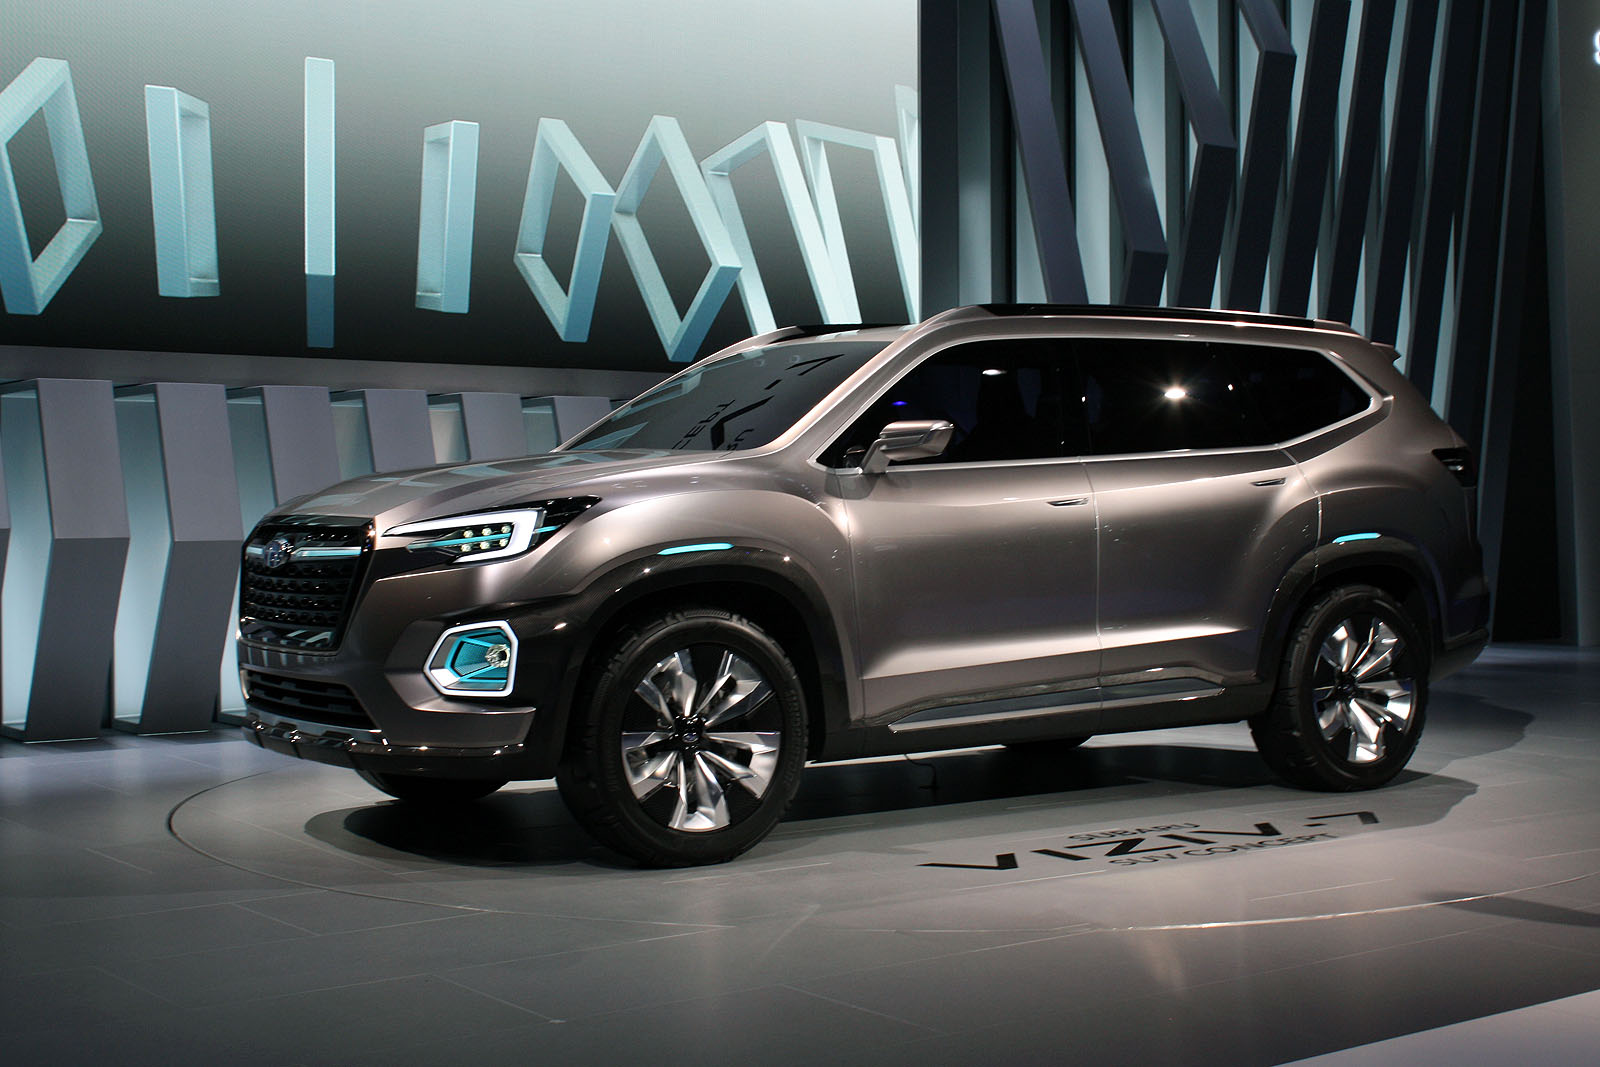 Viziv-7 Concept Previews Upcoming Subaru SUV With 7 Seats